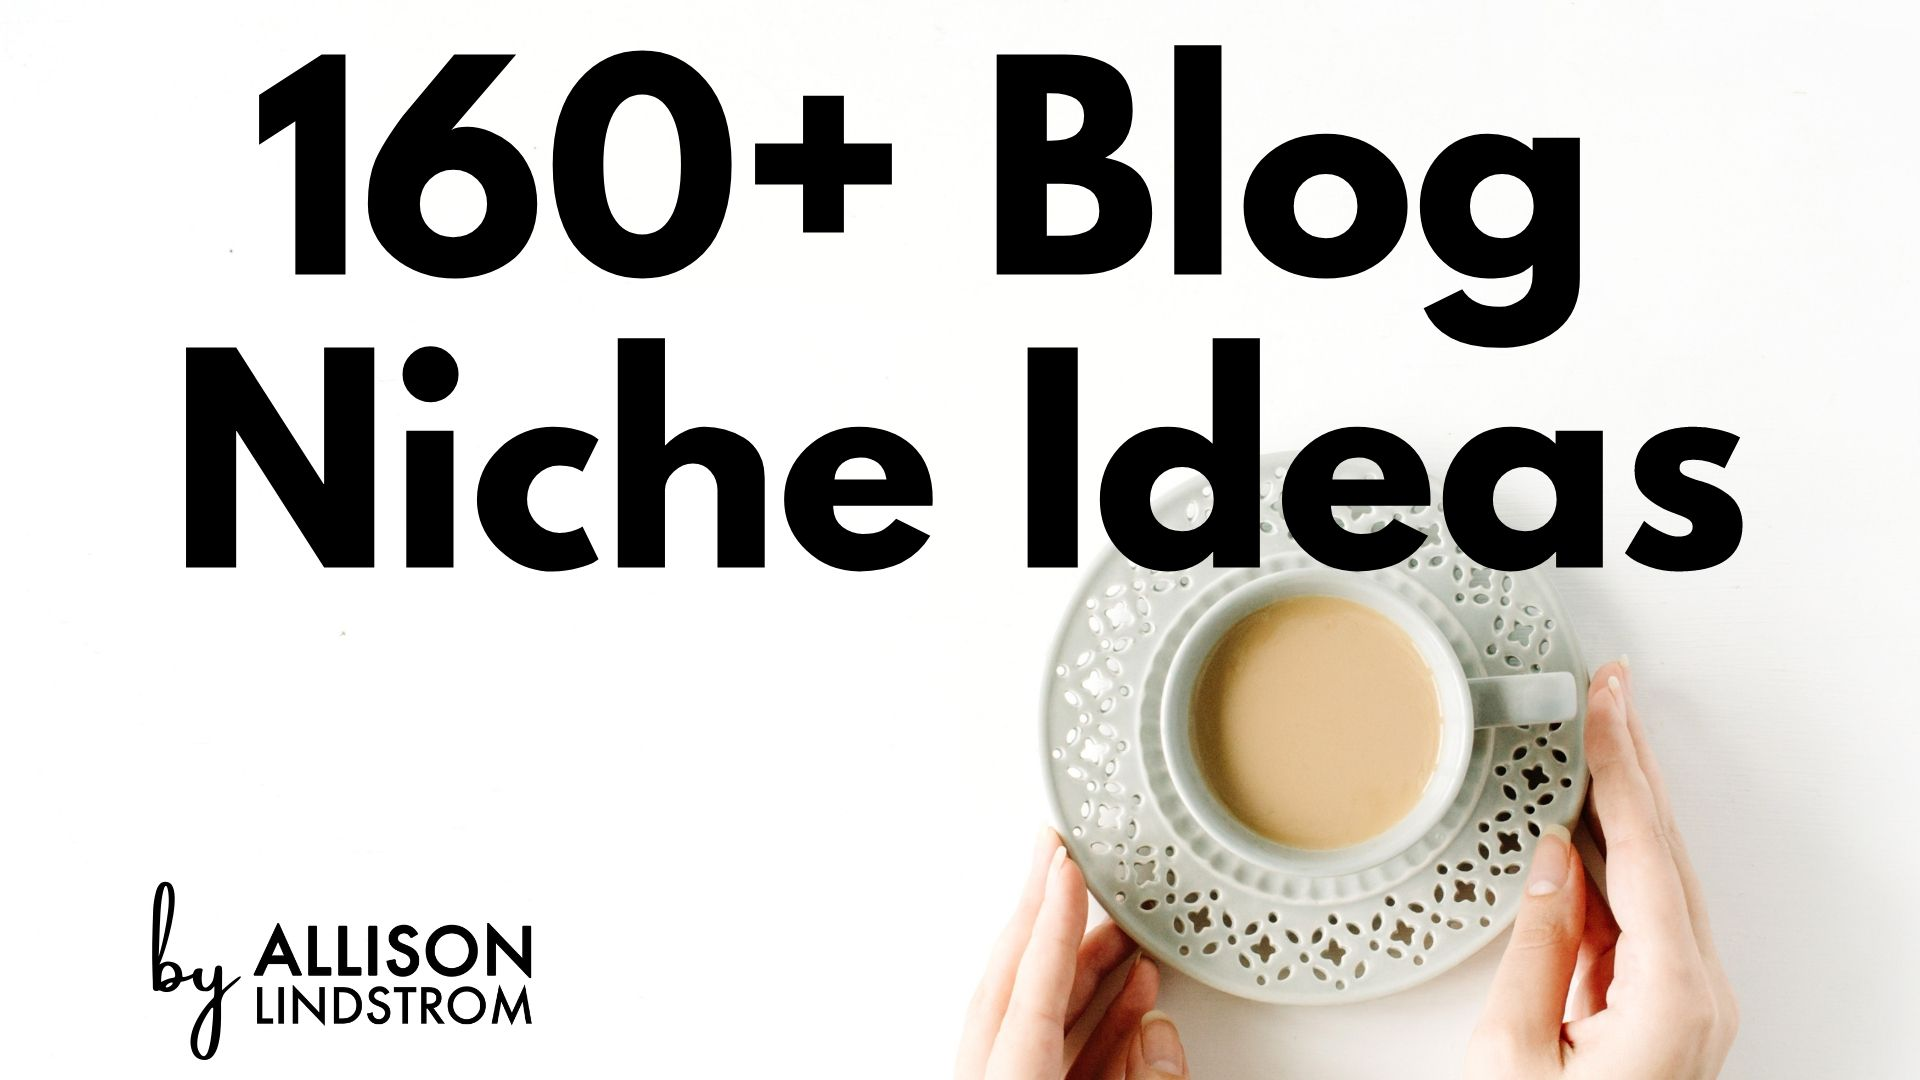 allison lindstrom 160 blog niche ideas.jpg